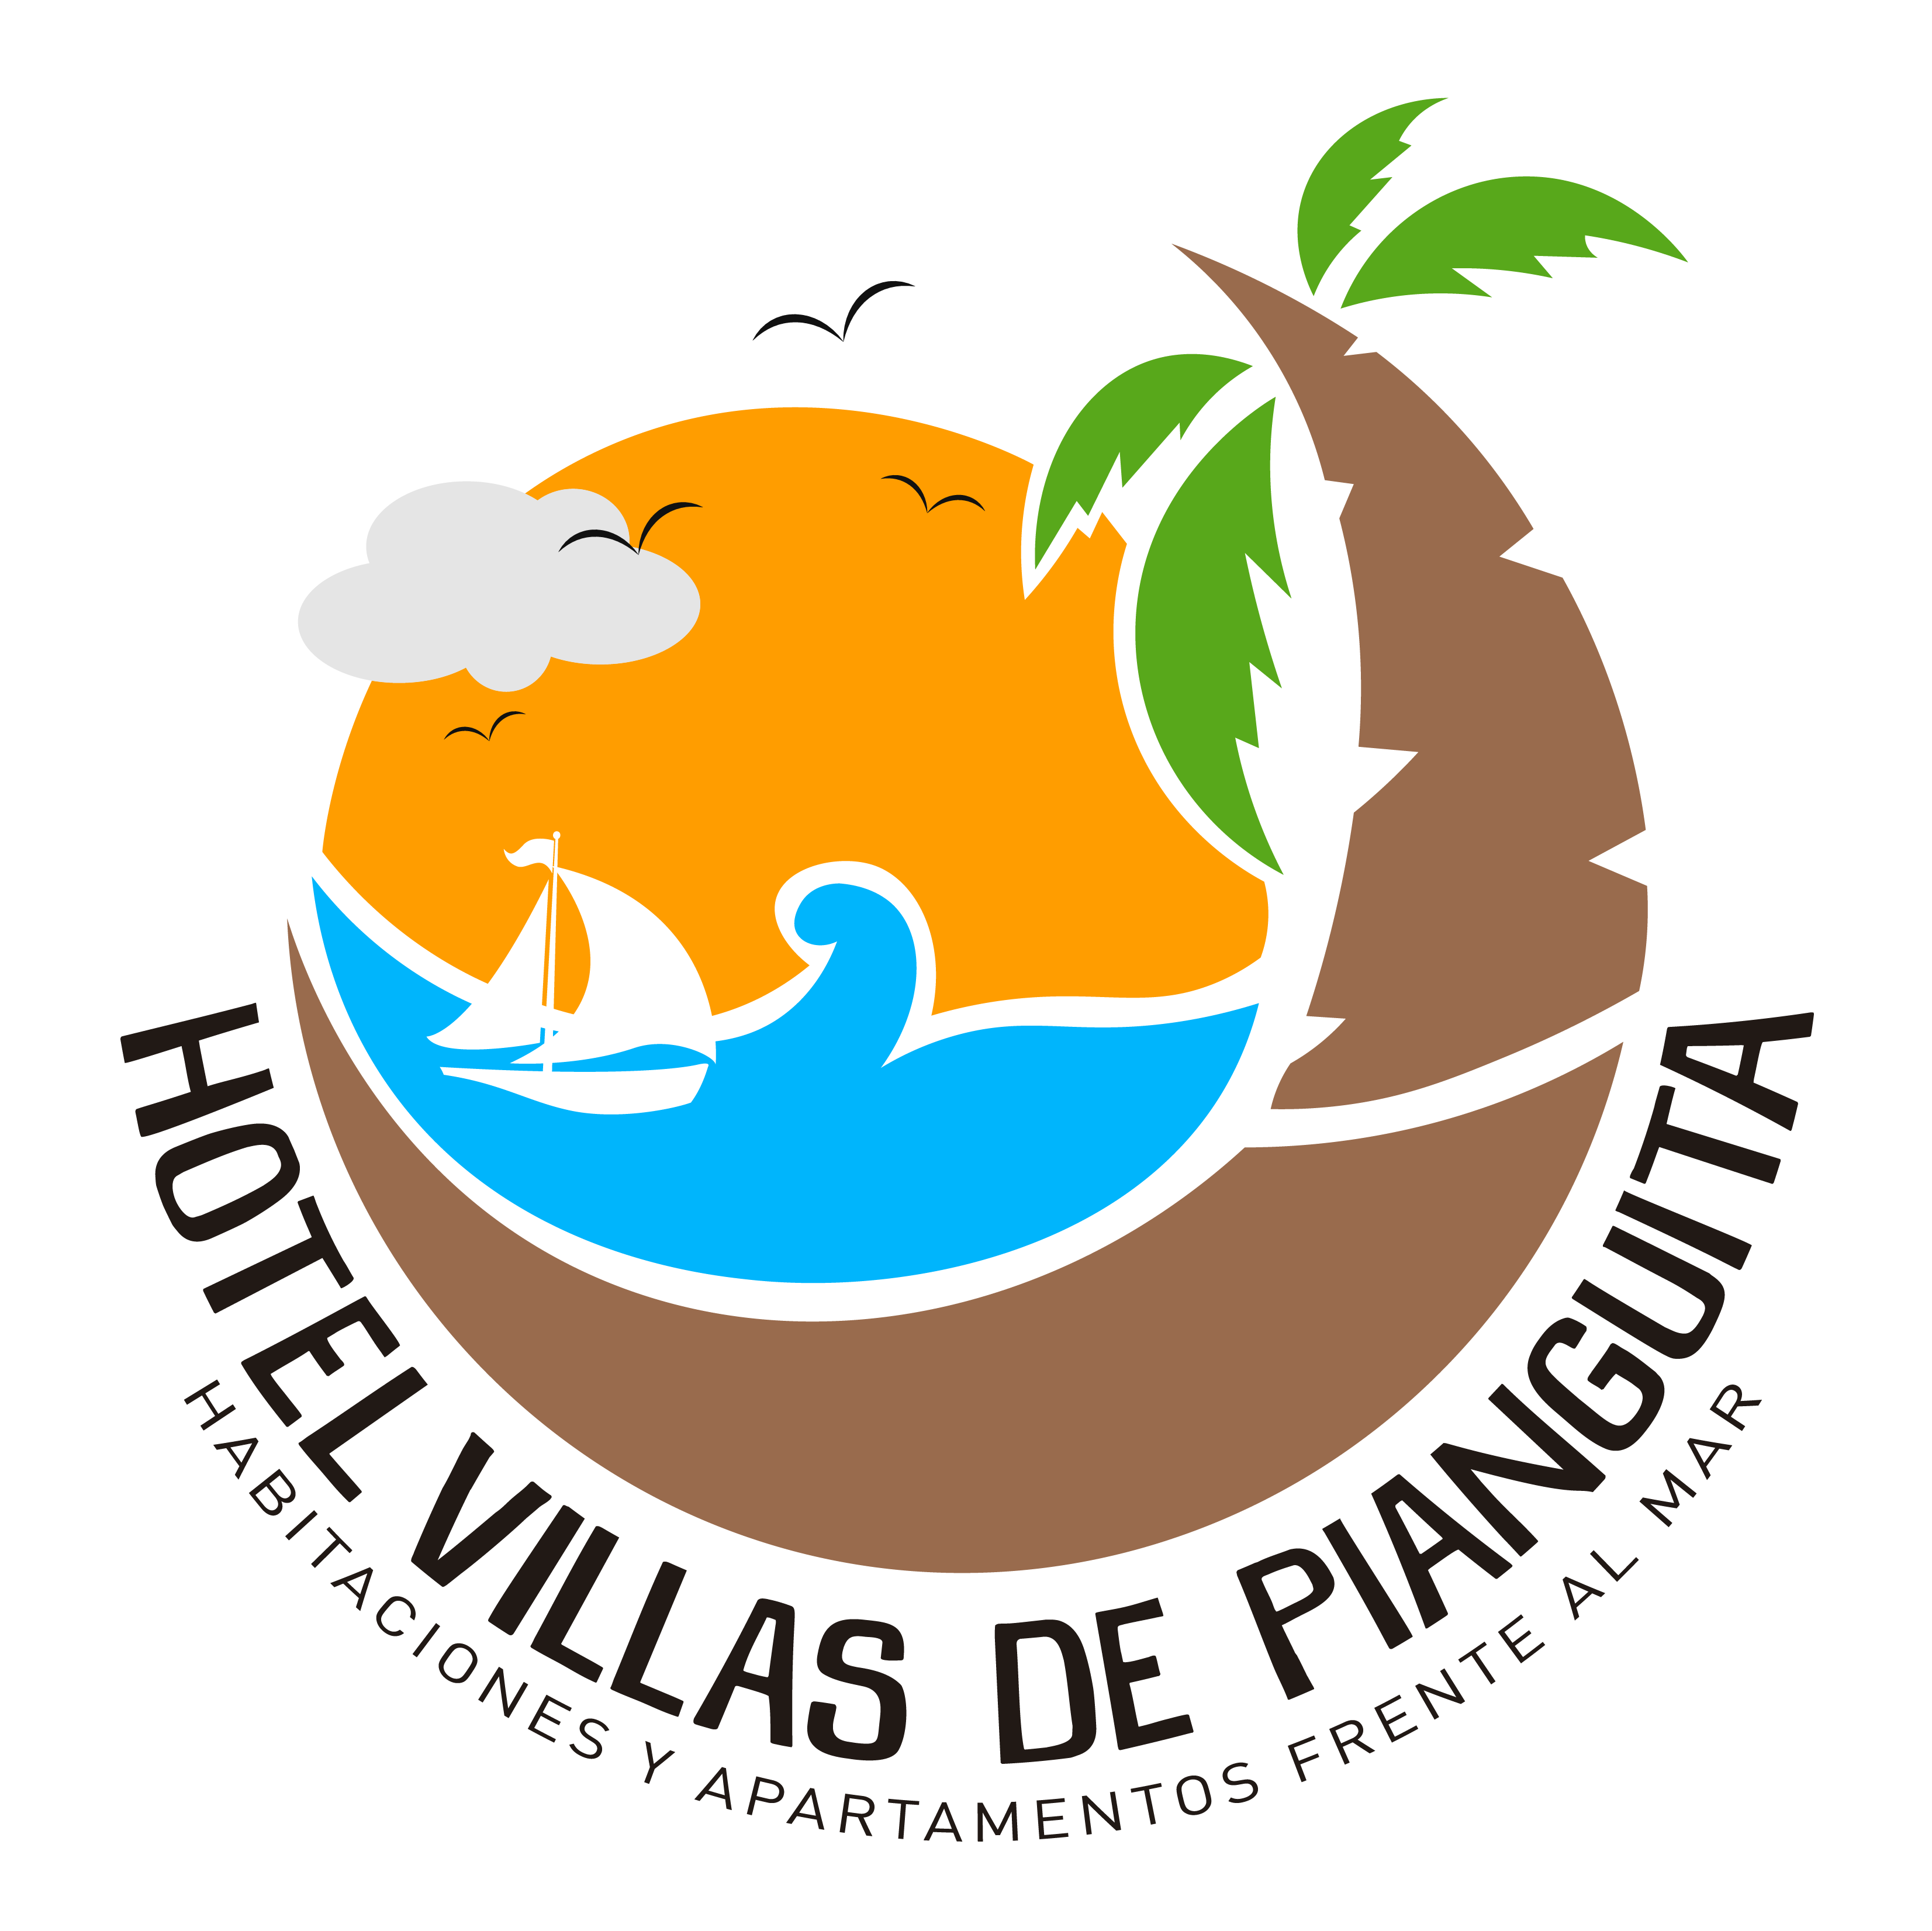 Hotel Villas de Pianguita